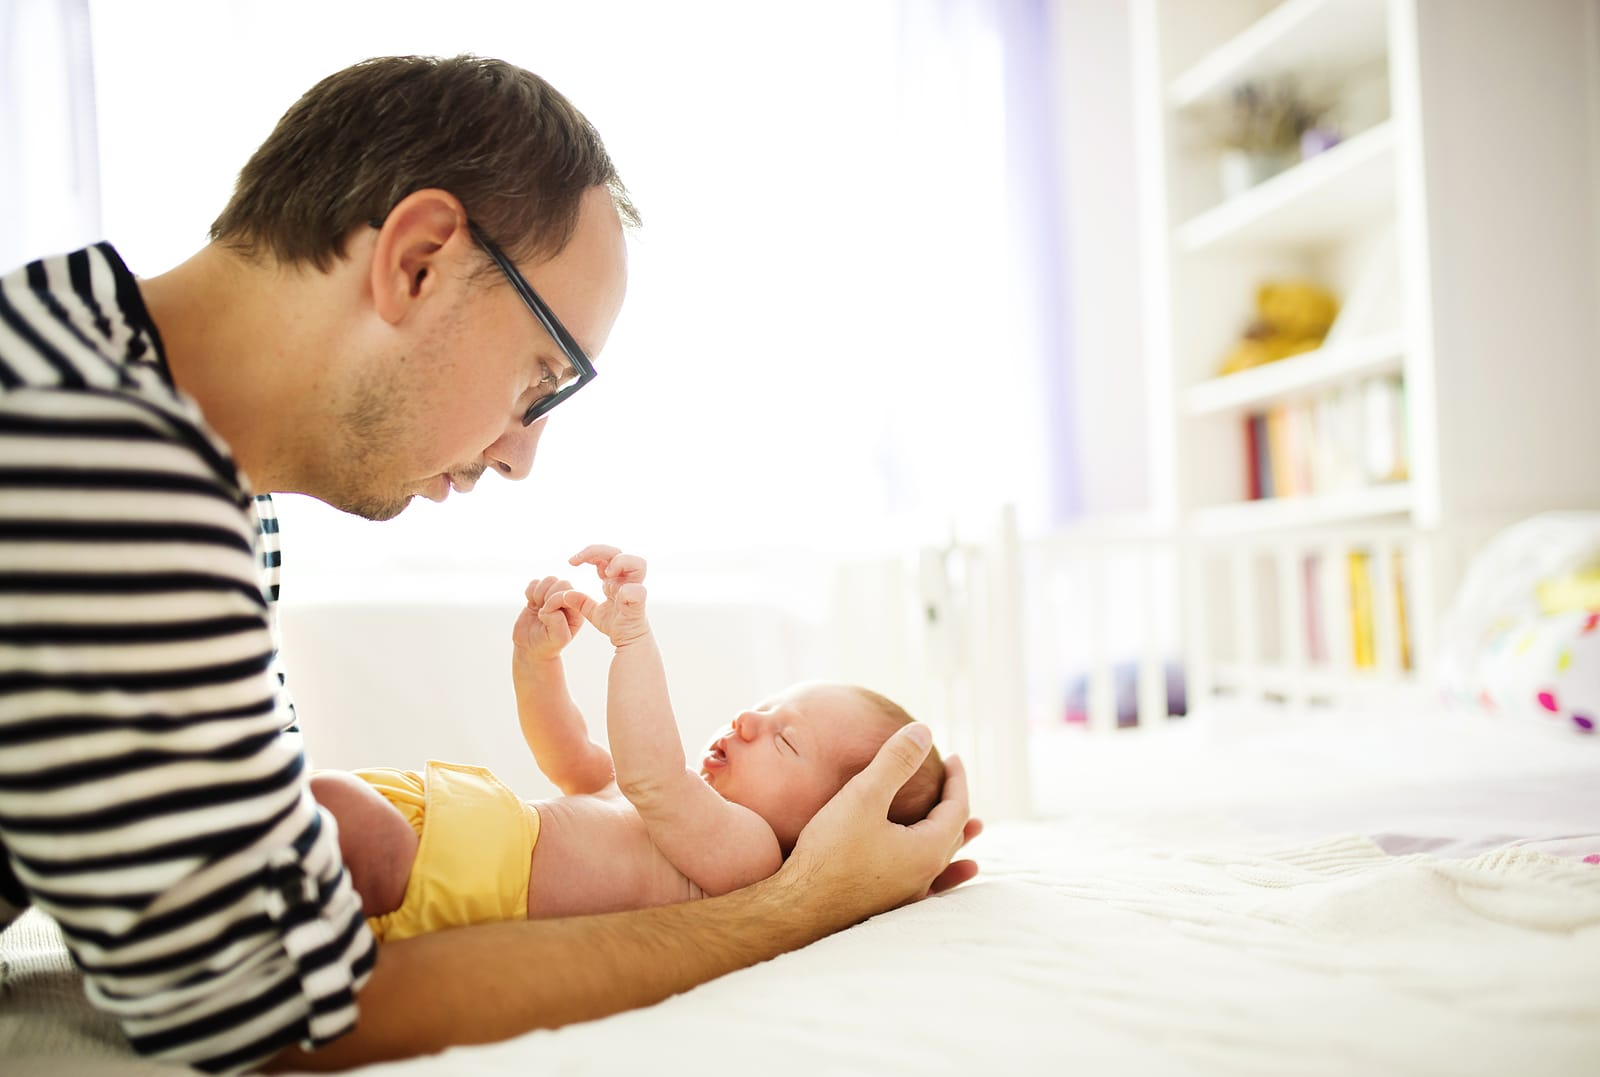 Happy young father enjoying special moments with his newborn baby daughter at home